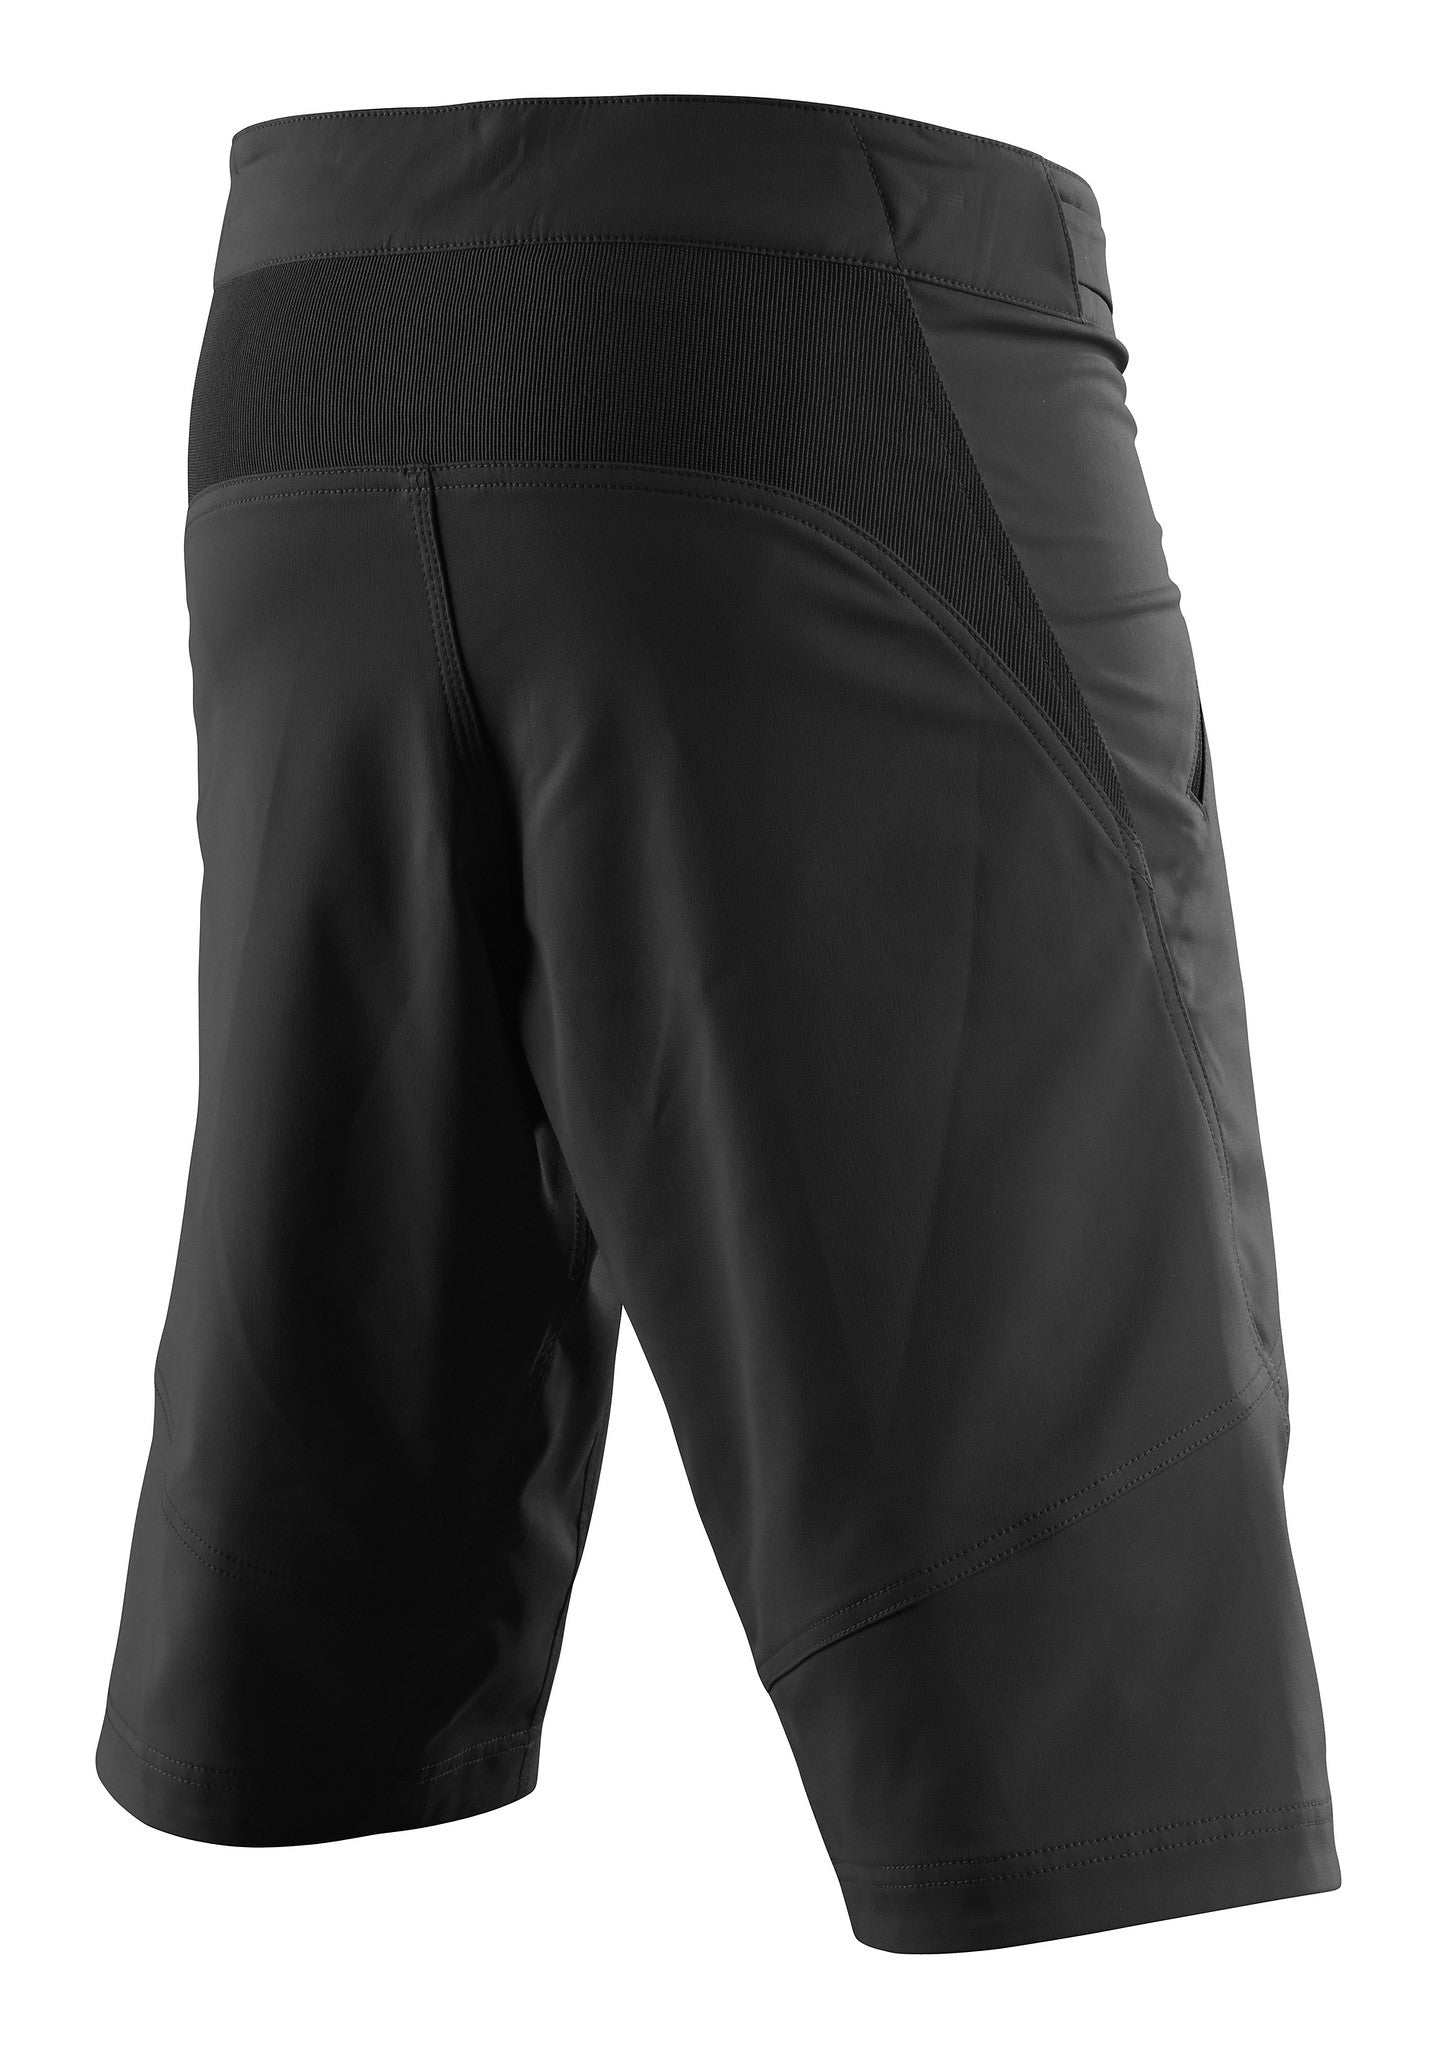 Troy Lee Designs Mountain Bike Skyline Short; Black 36